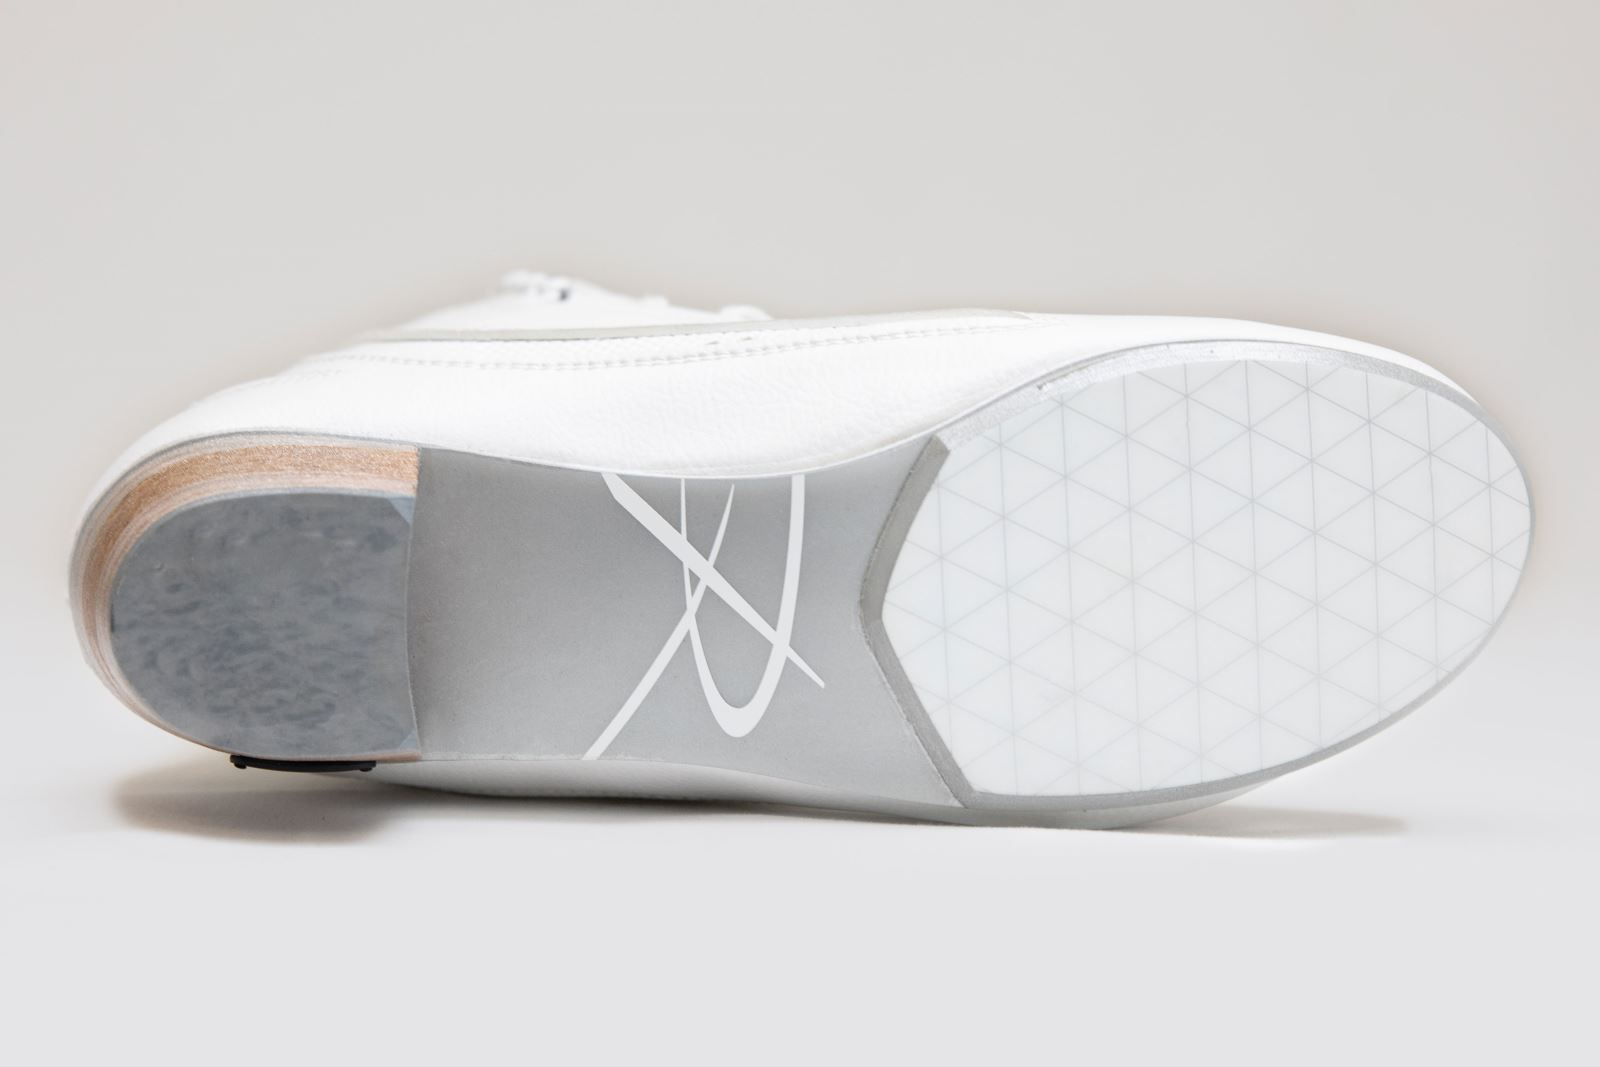 Shortened outsole design featured on the new Riedell Elara